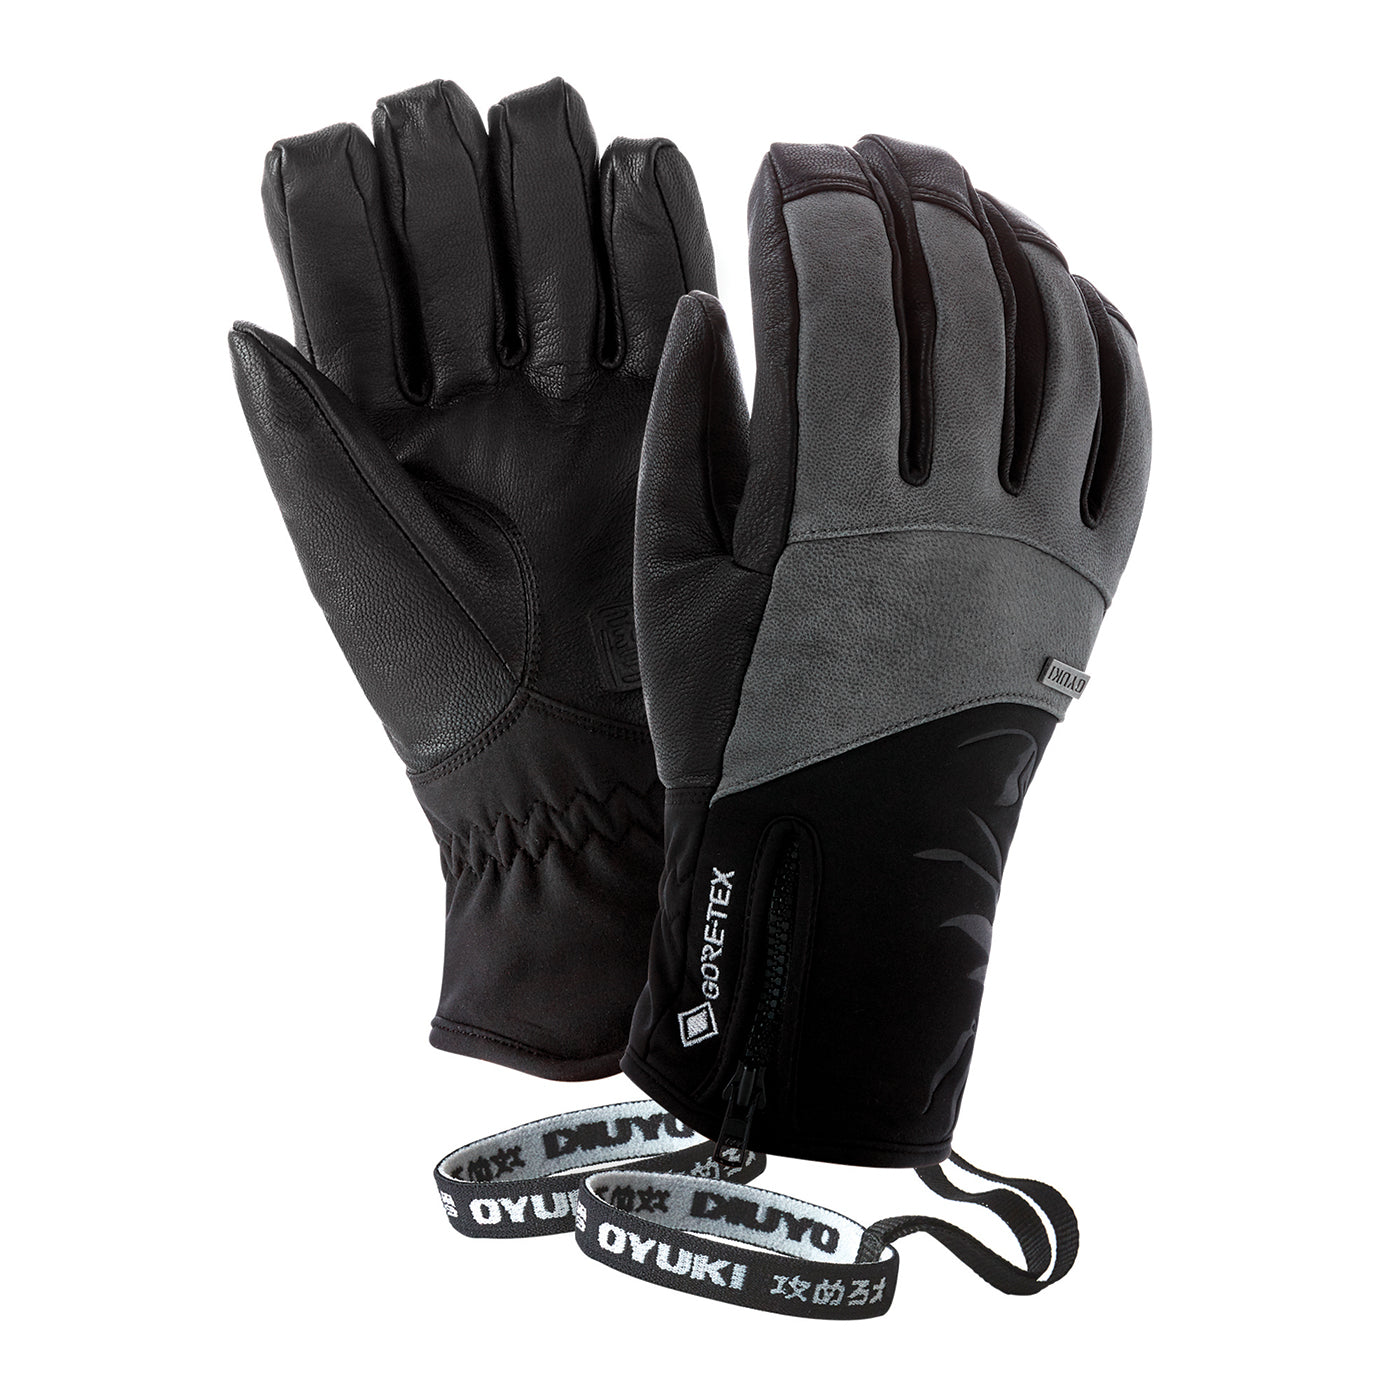 Oyuki Kana GTX Glove | Black Grey- Shop Skis and snow gear online nz - snowscene